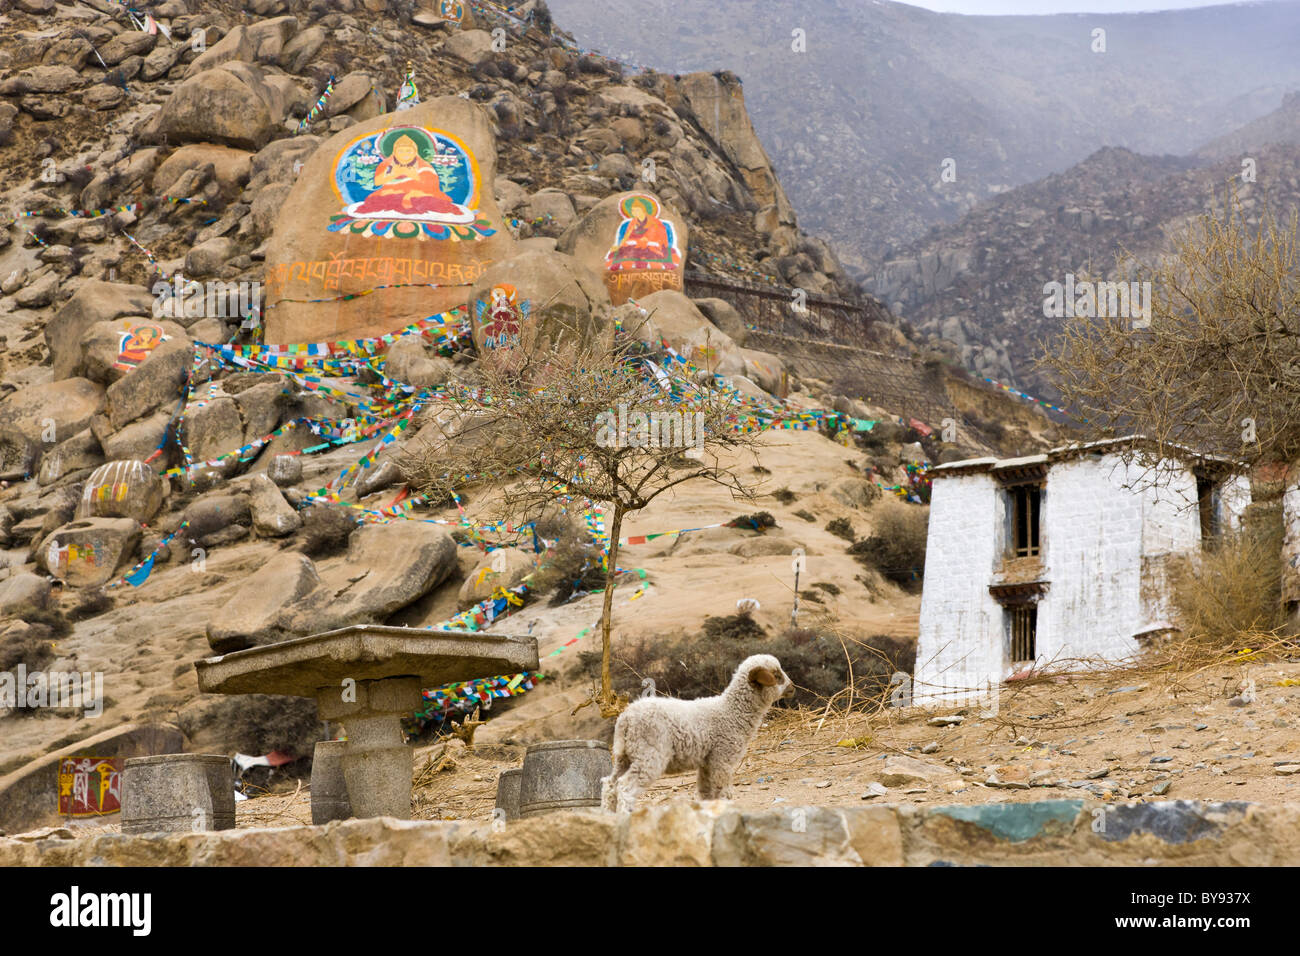 Rock paintings of Buddha and lamb at Drepung Monastery, Lhasa, Tibet. JMH4515 - Stock Image